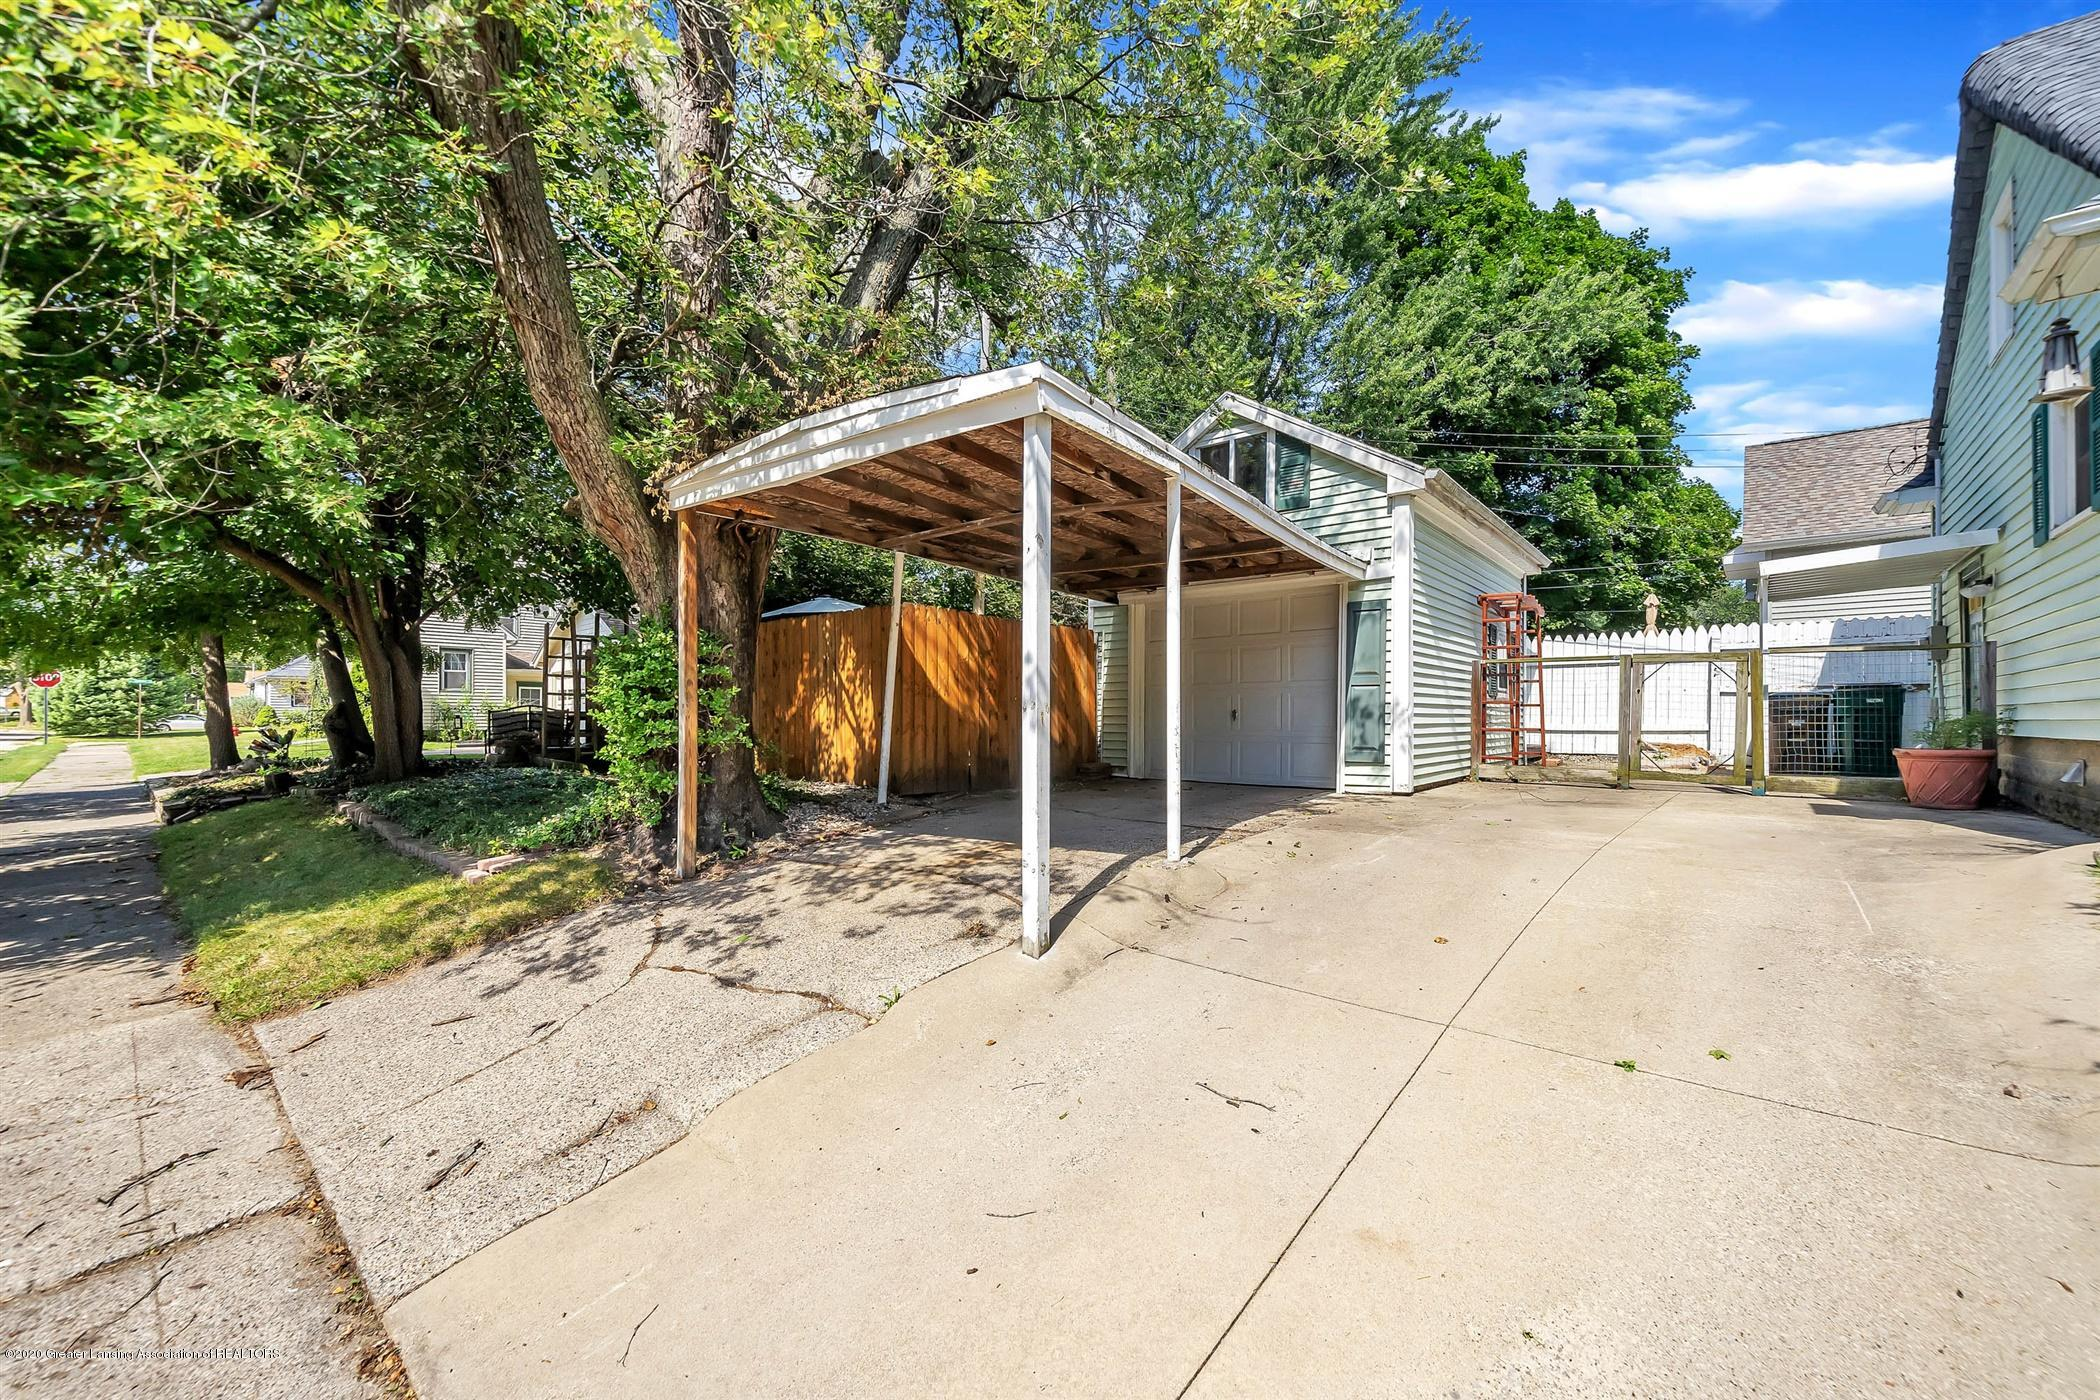 2032 Clifton Ave - (32) EXTERIOR Driveway and Carport - 33